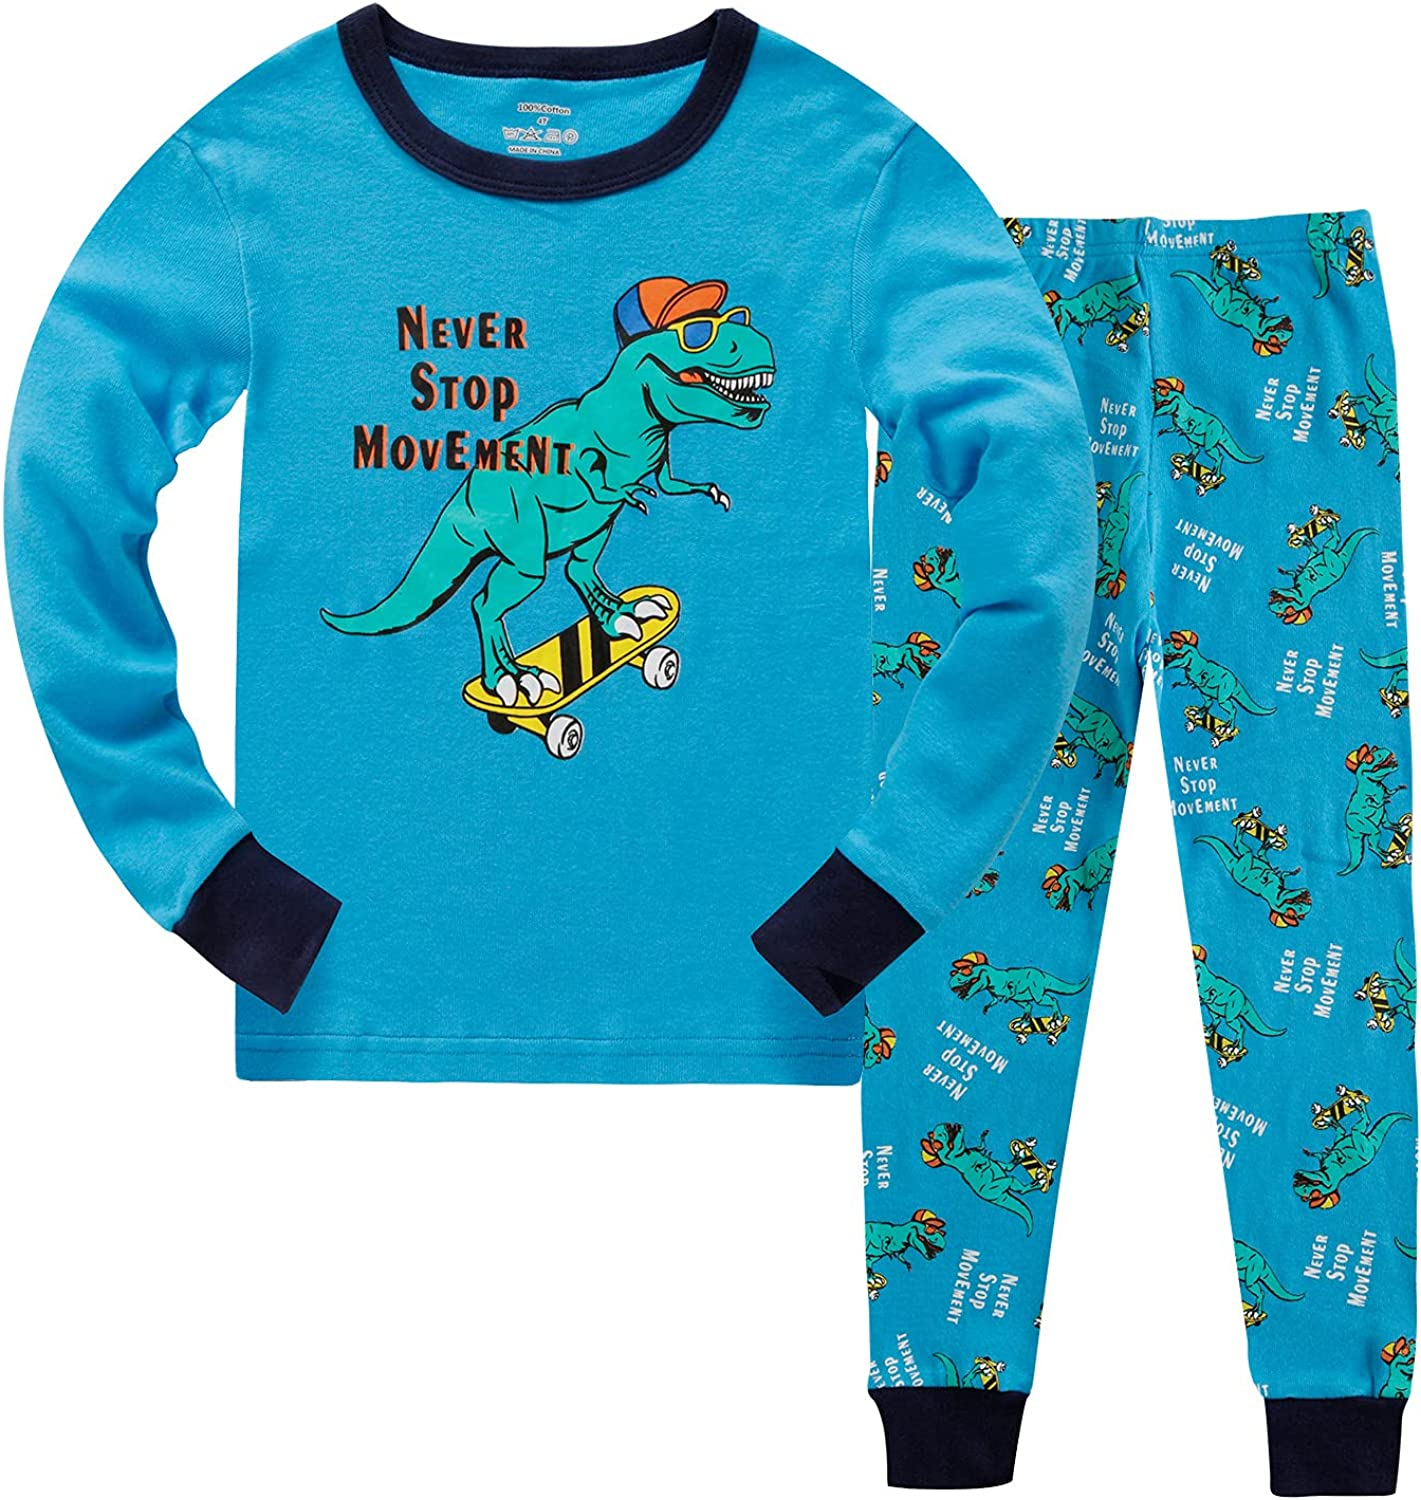 Toddler Boy Clothes Outfits Dinosaur Graphic Long Sleeve Shirts and Pants Set 2 Pieces Blue 3-7T